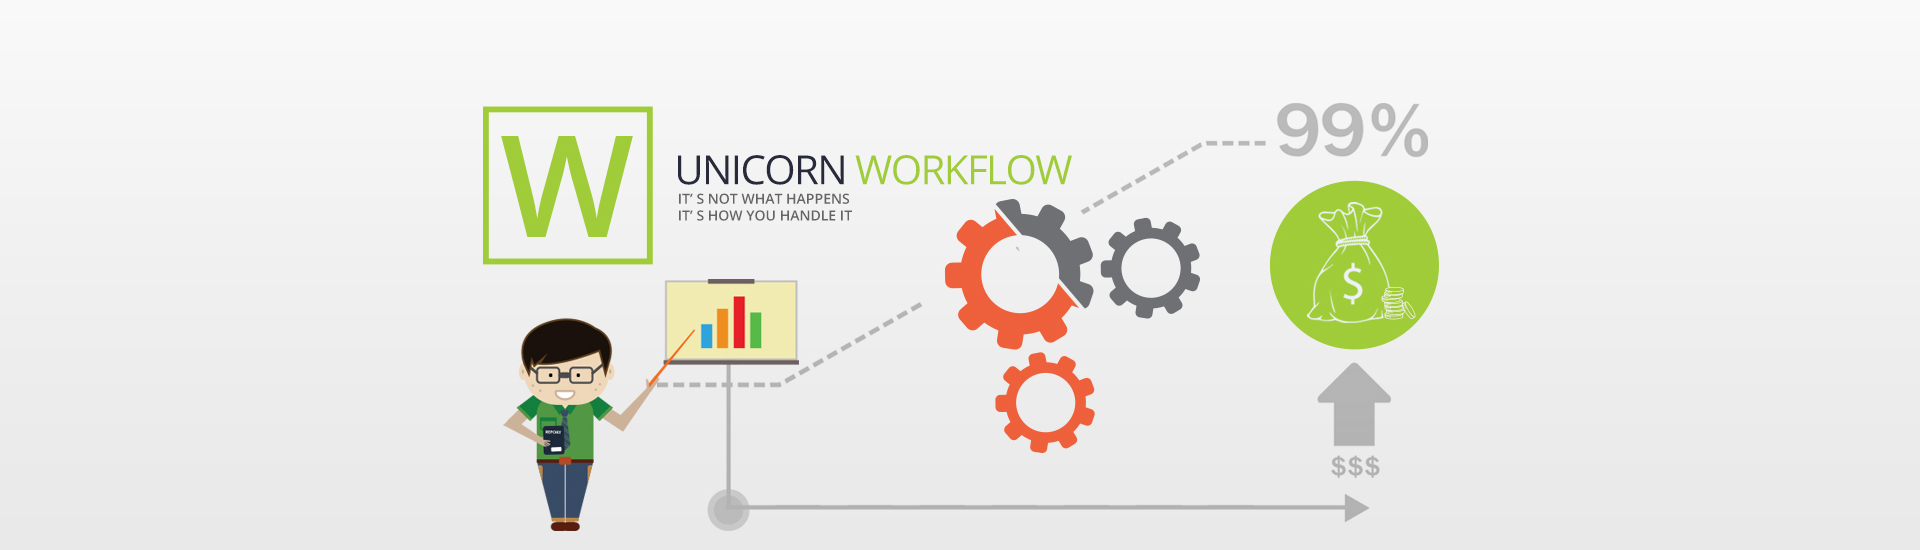 Unicorn WorkFlow